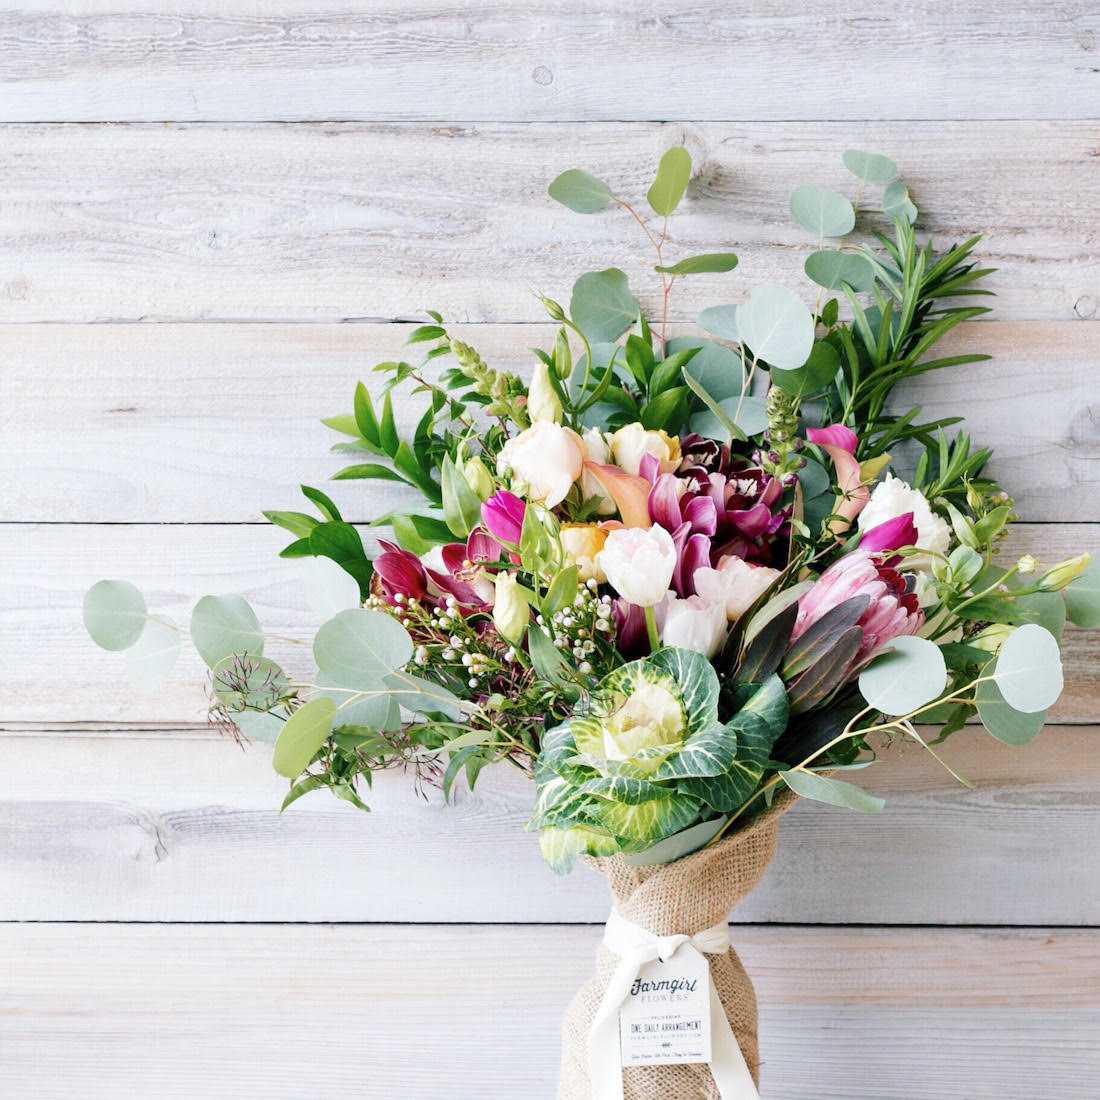 Christina Stembels Dos And Donts To Perfect Flower Arrangements